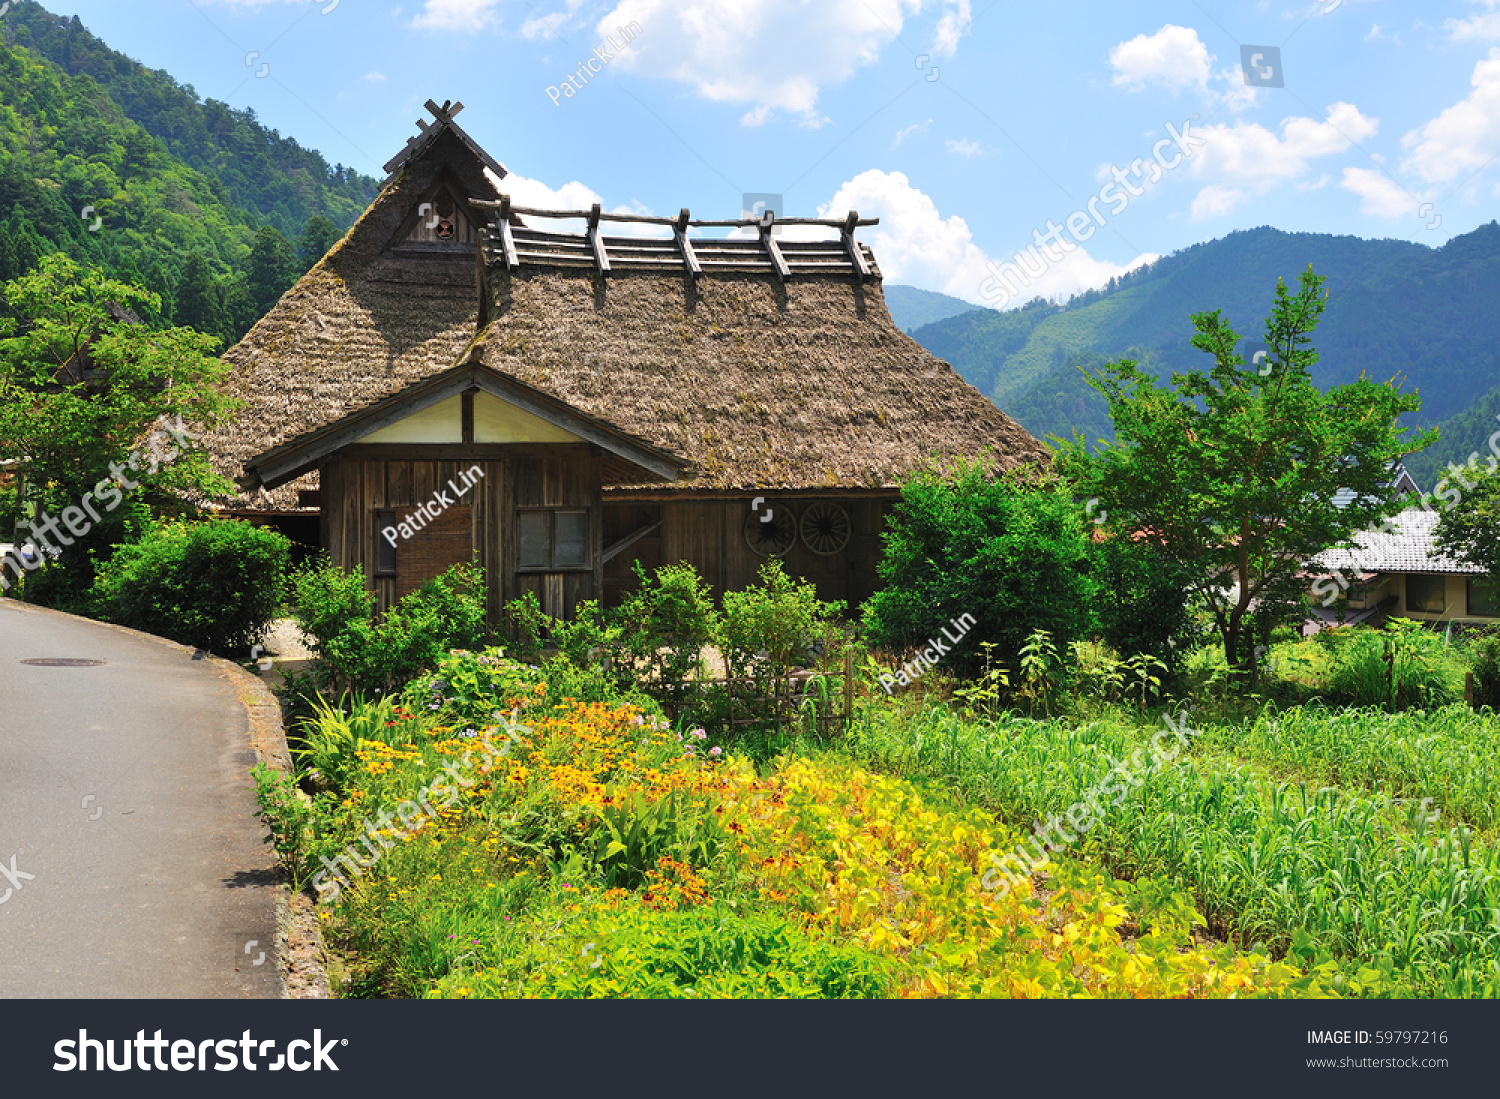 Traditional japanes house vintage roof stock photo 59797216 shutterstock - Traditional houses attic ...